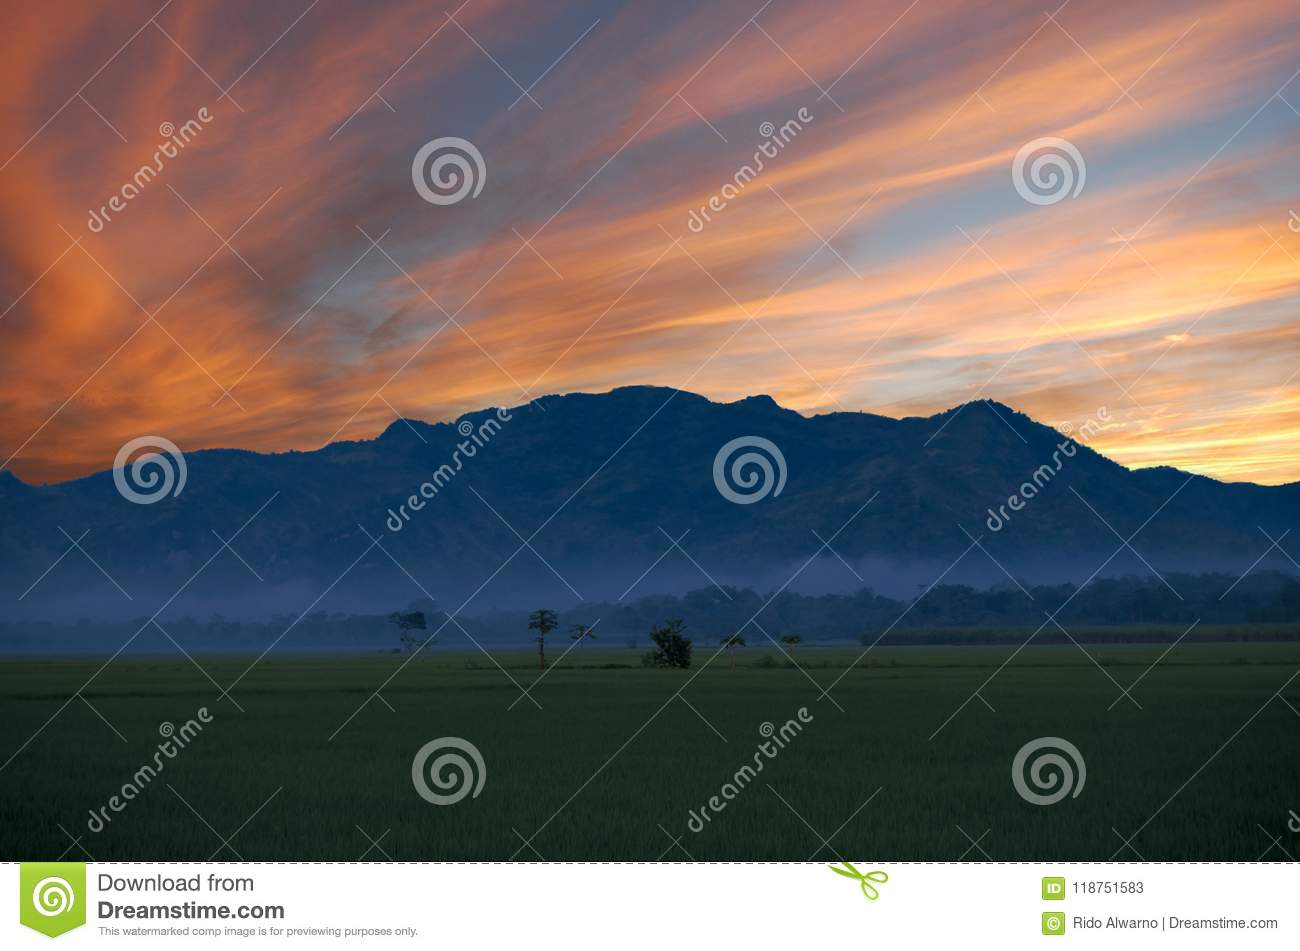 Green field at dawn and mountain in the distance under the red clouds